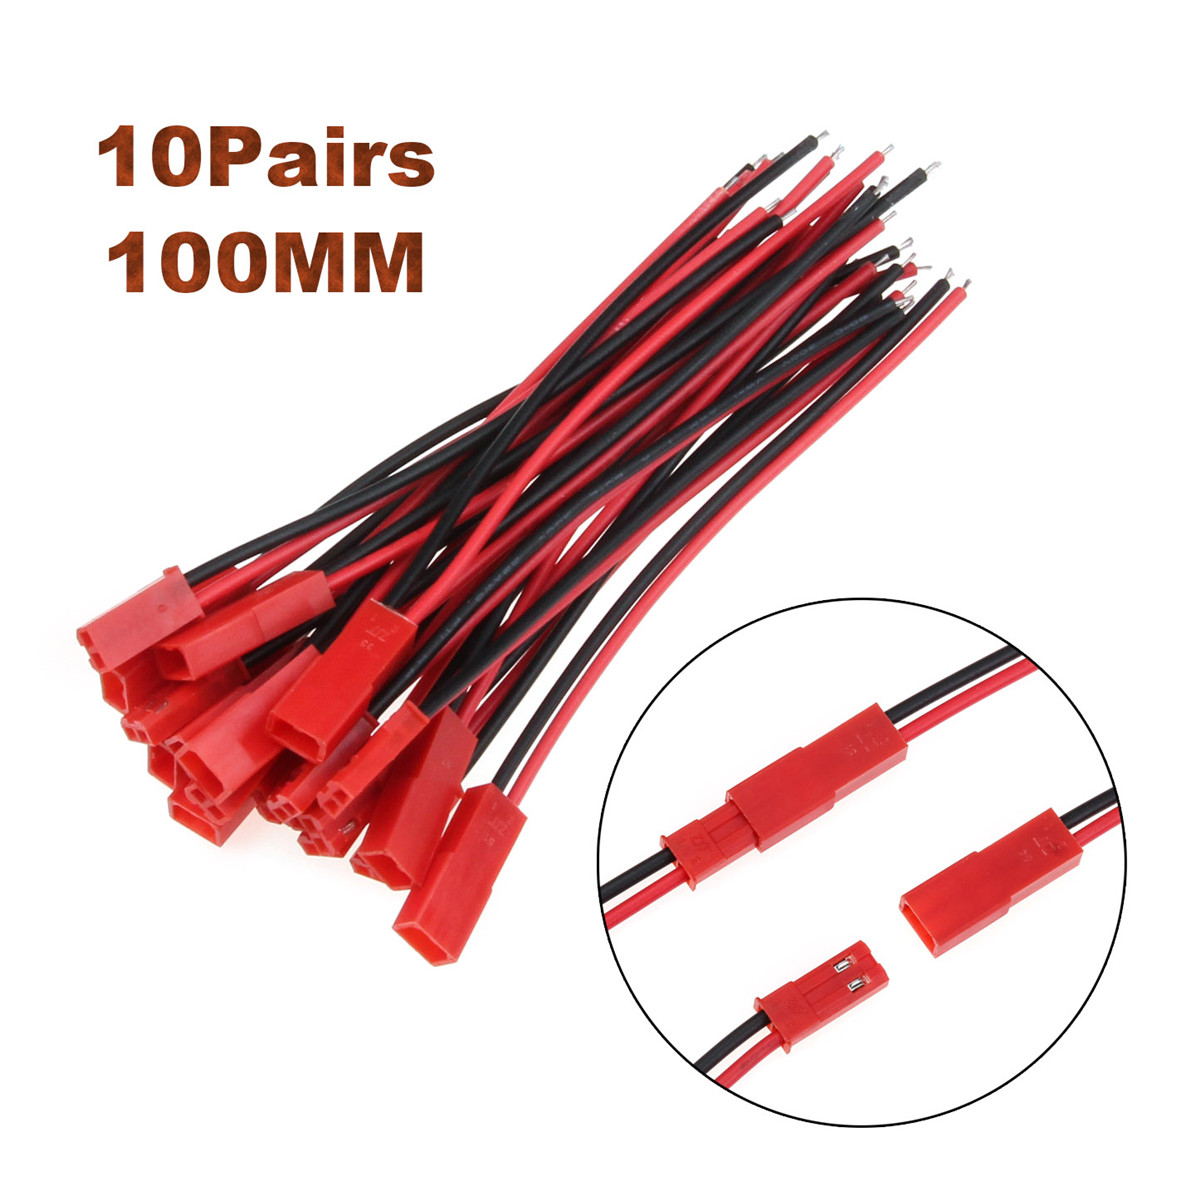 10 Set 100mm Male&Female Connector JST Plug Cable For RC BEC Battery Helicopter DIY FPV Drone 2 Pin Connectors Terminals diy hf 4 pin male female jack set adapters connectors black silver 2 pcs